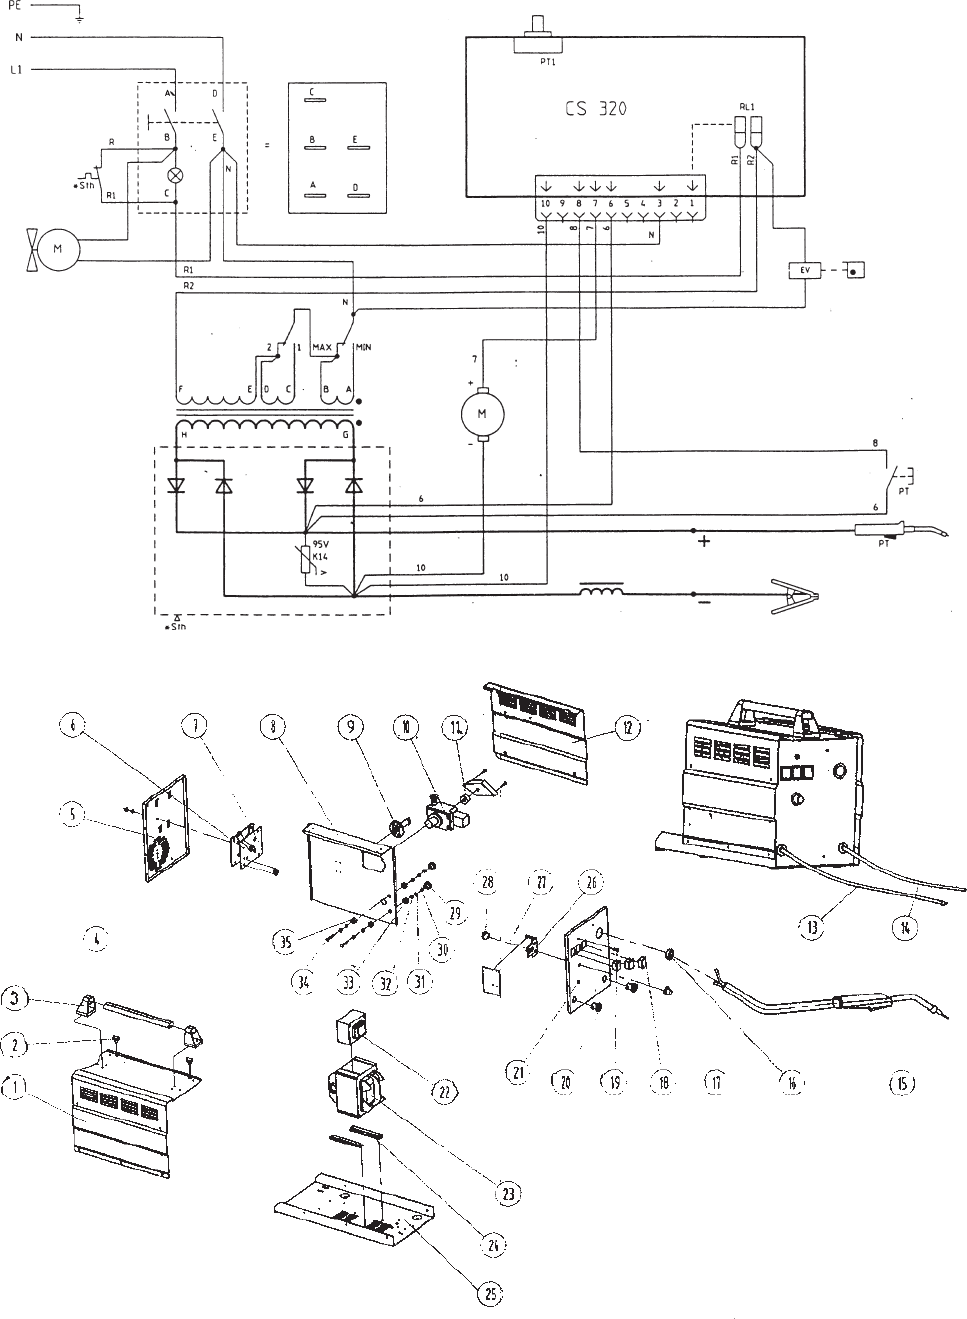 Harbor Freight Electric Drill Wiring Diagram on Drill Switch Wiring Diagram Without